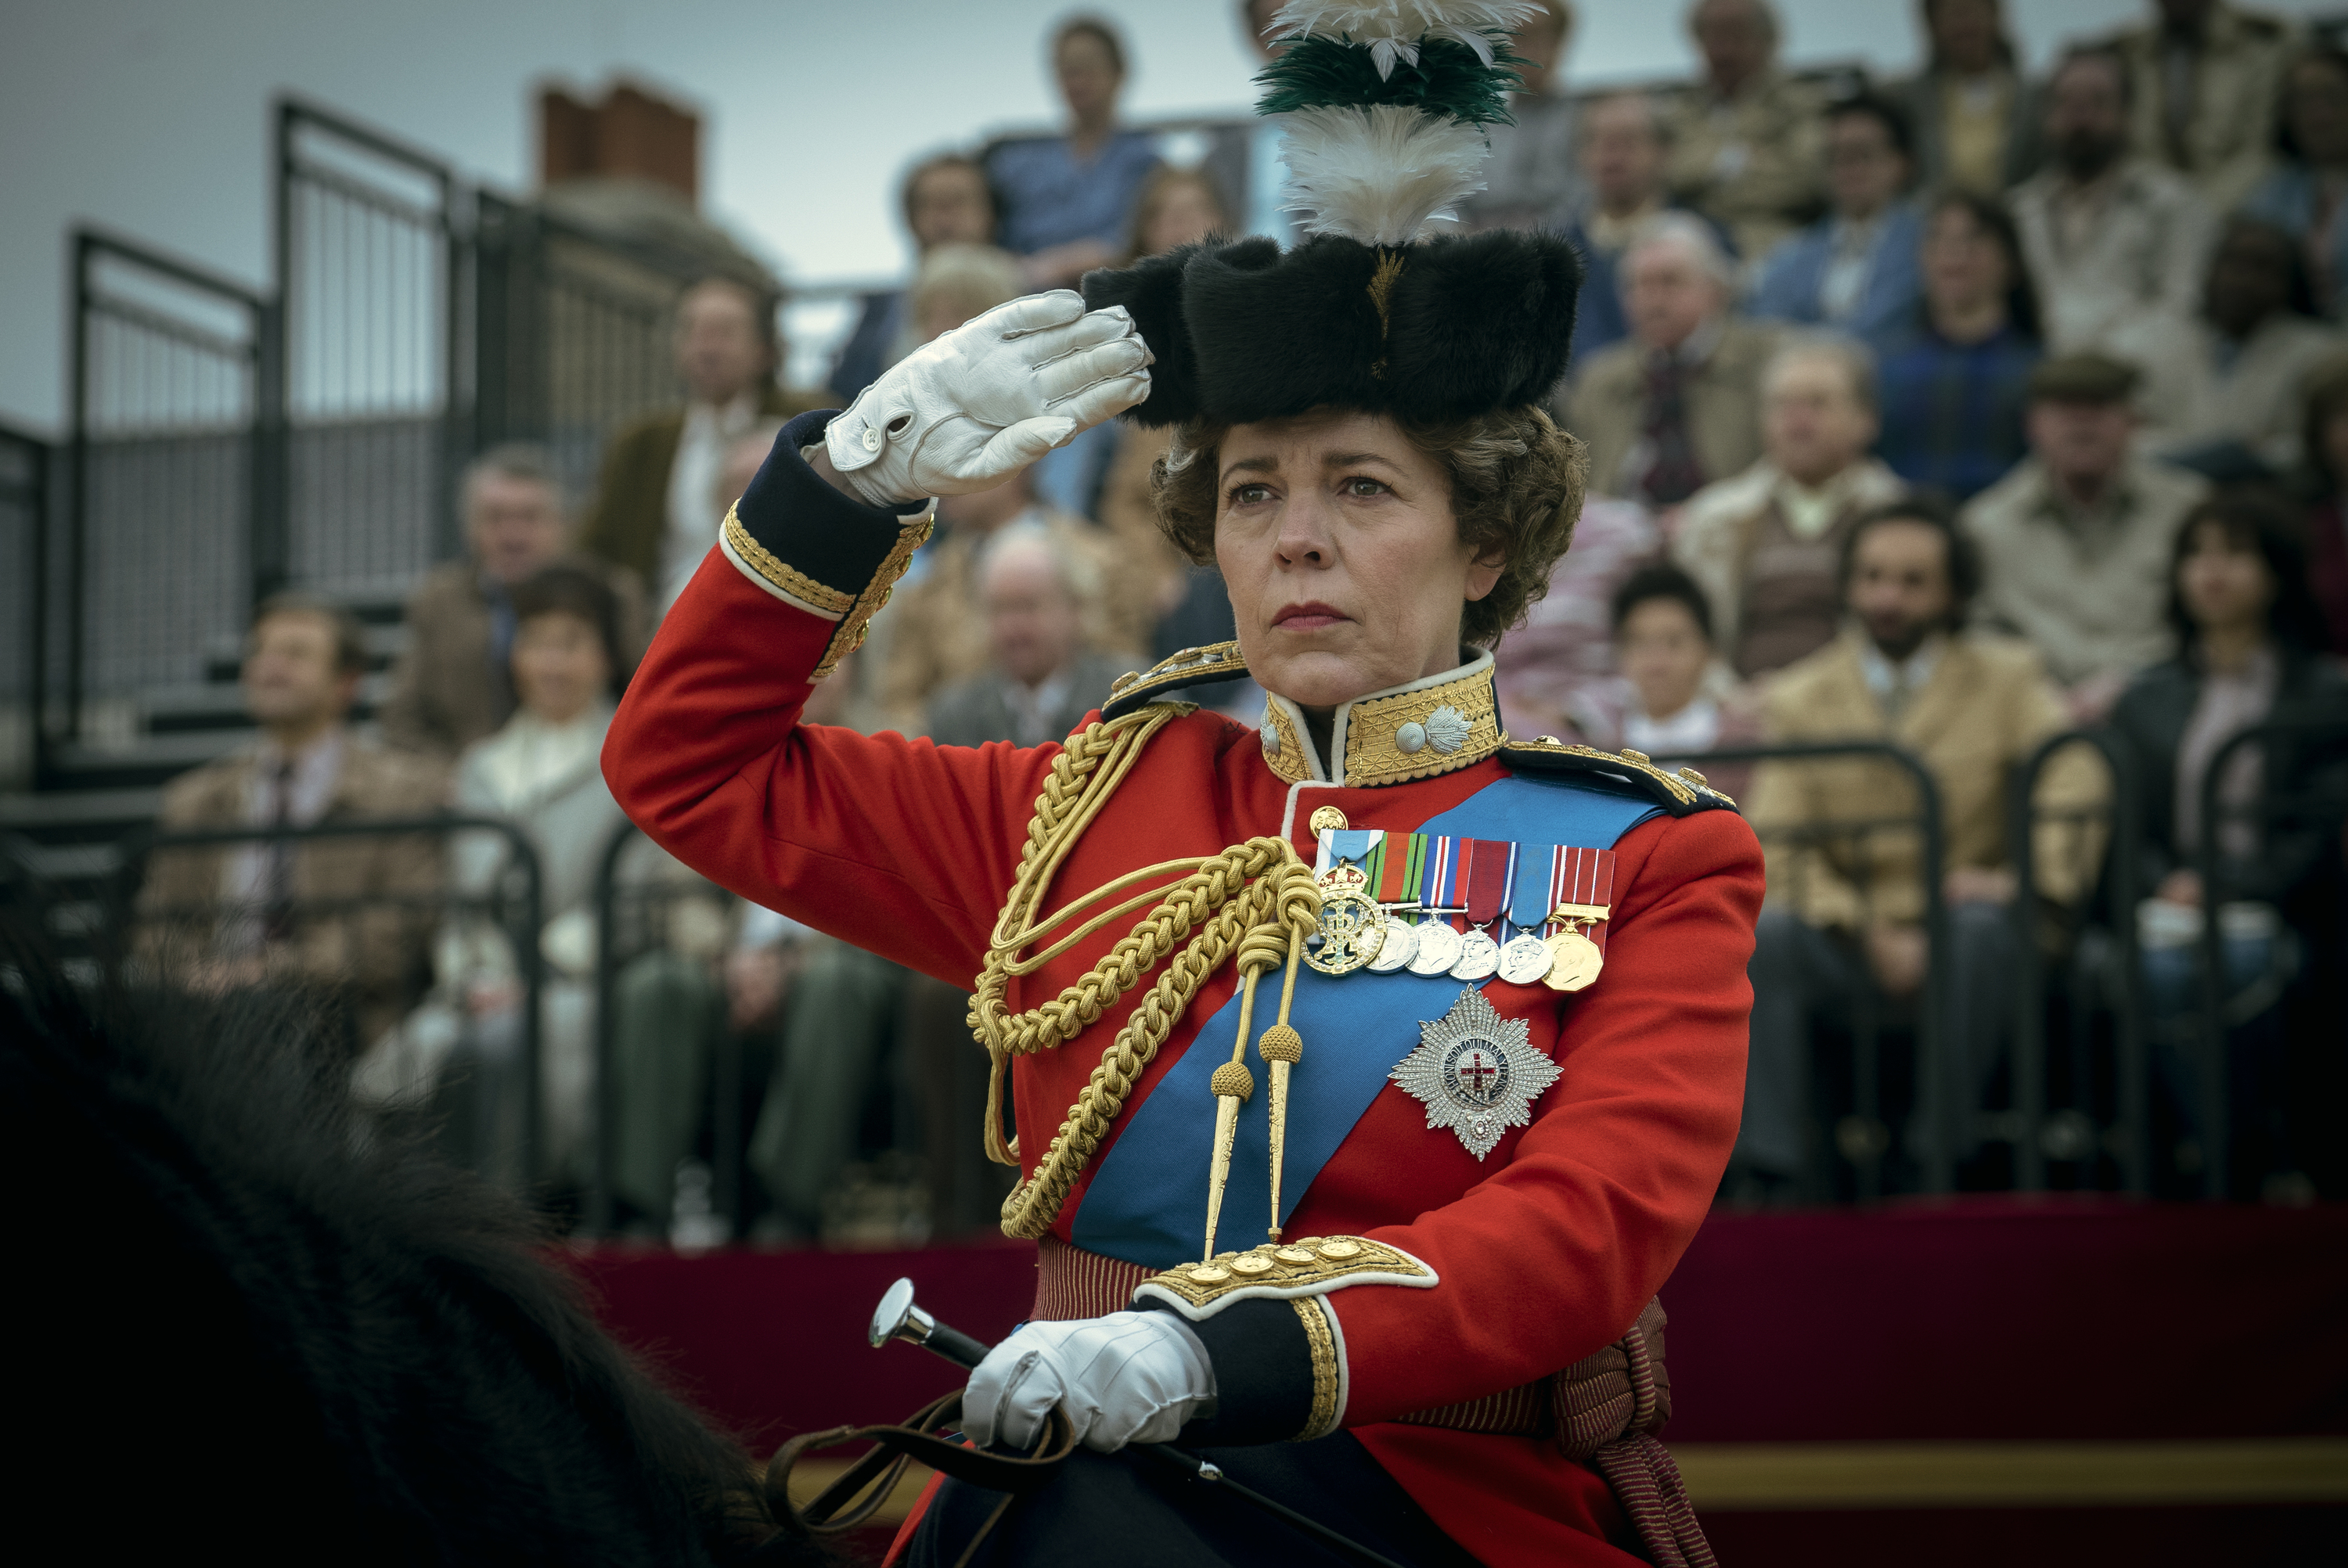 The Crown S4 Netflix